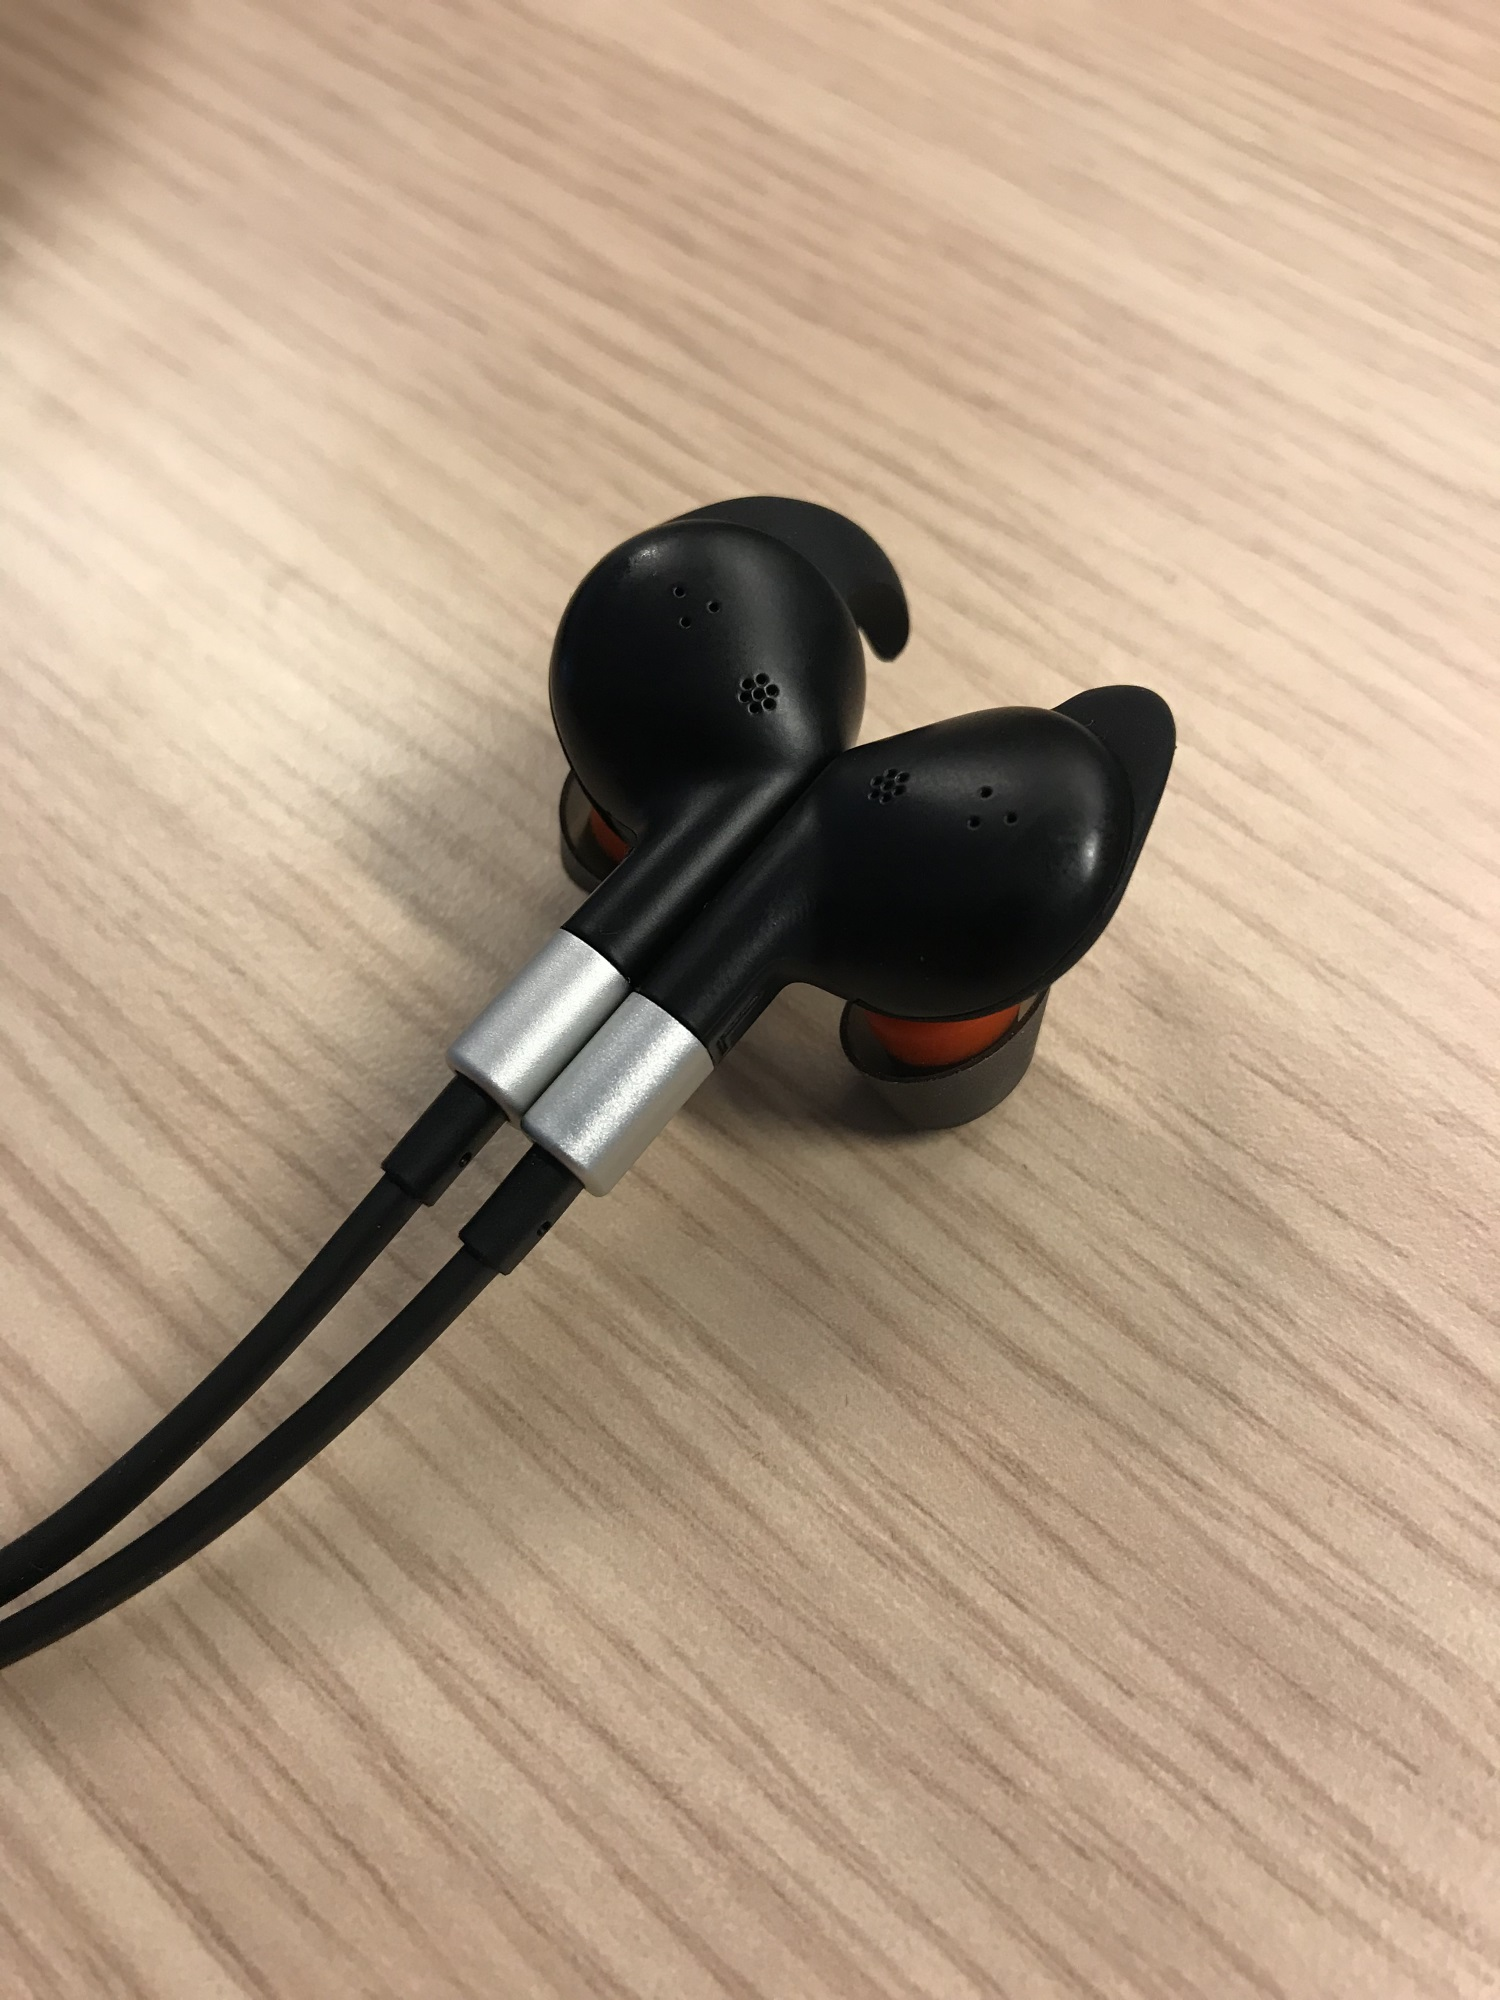 Review: Jabra Evolve 75e MS-Sharing Knowledge | Erwin